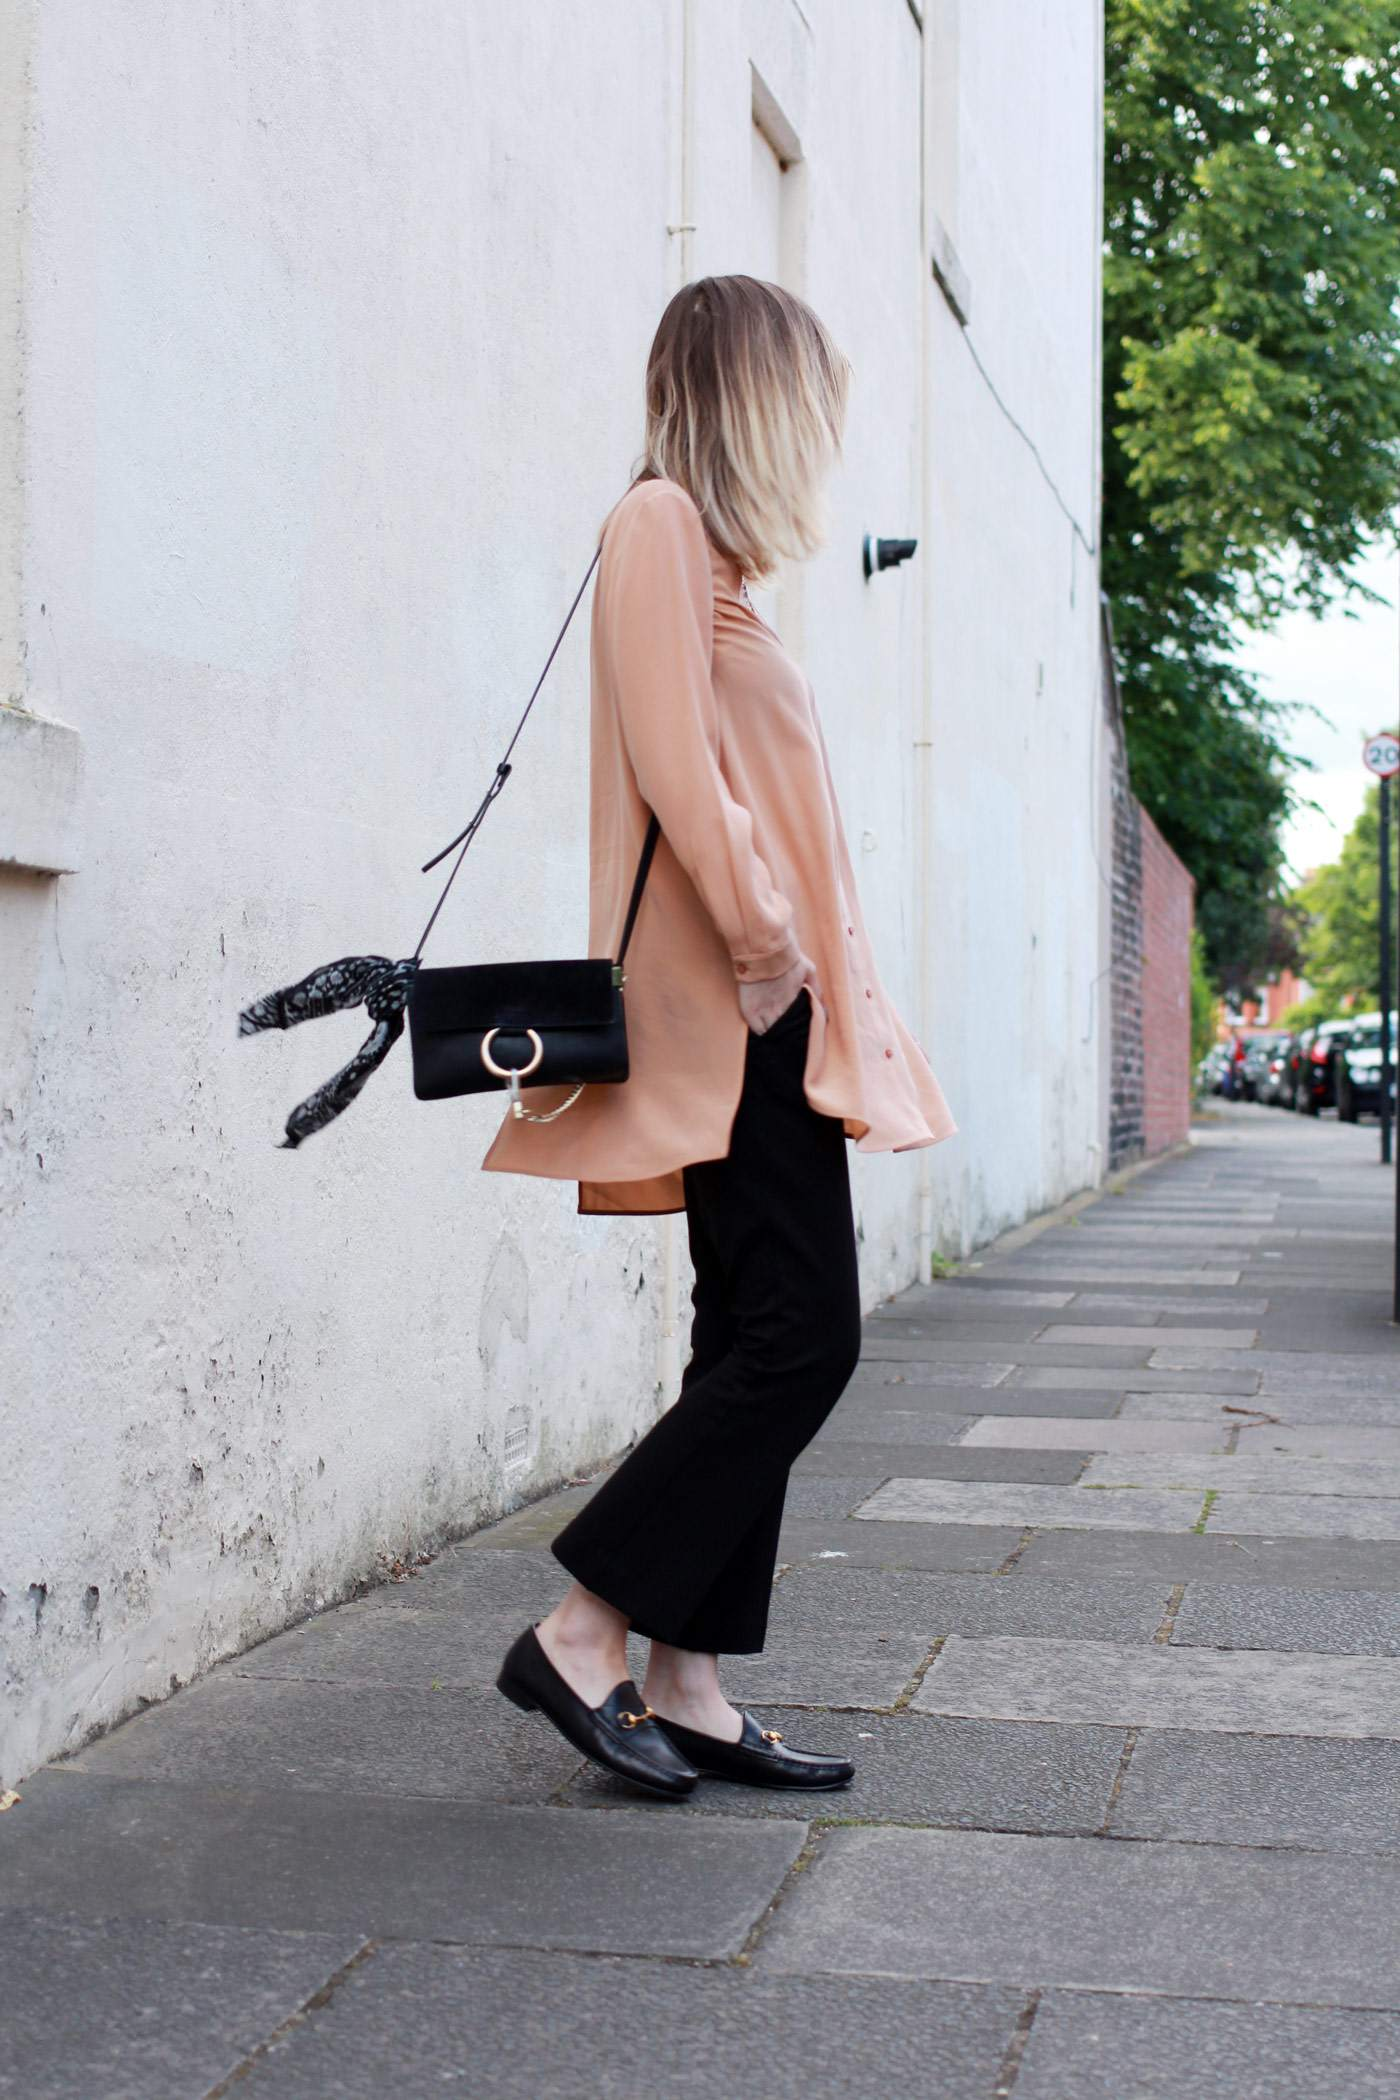 Boden-flared-trousers-COS-peach-shirt-Chloe-faye-bag-black-gucci-loafers-2